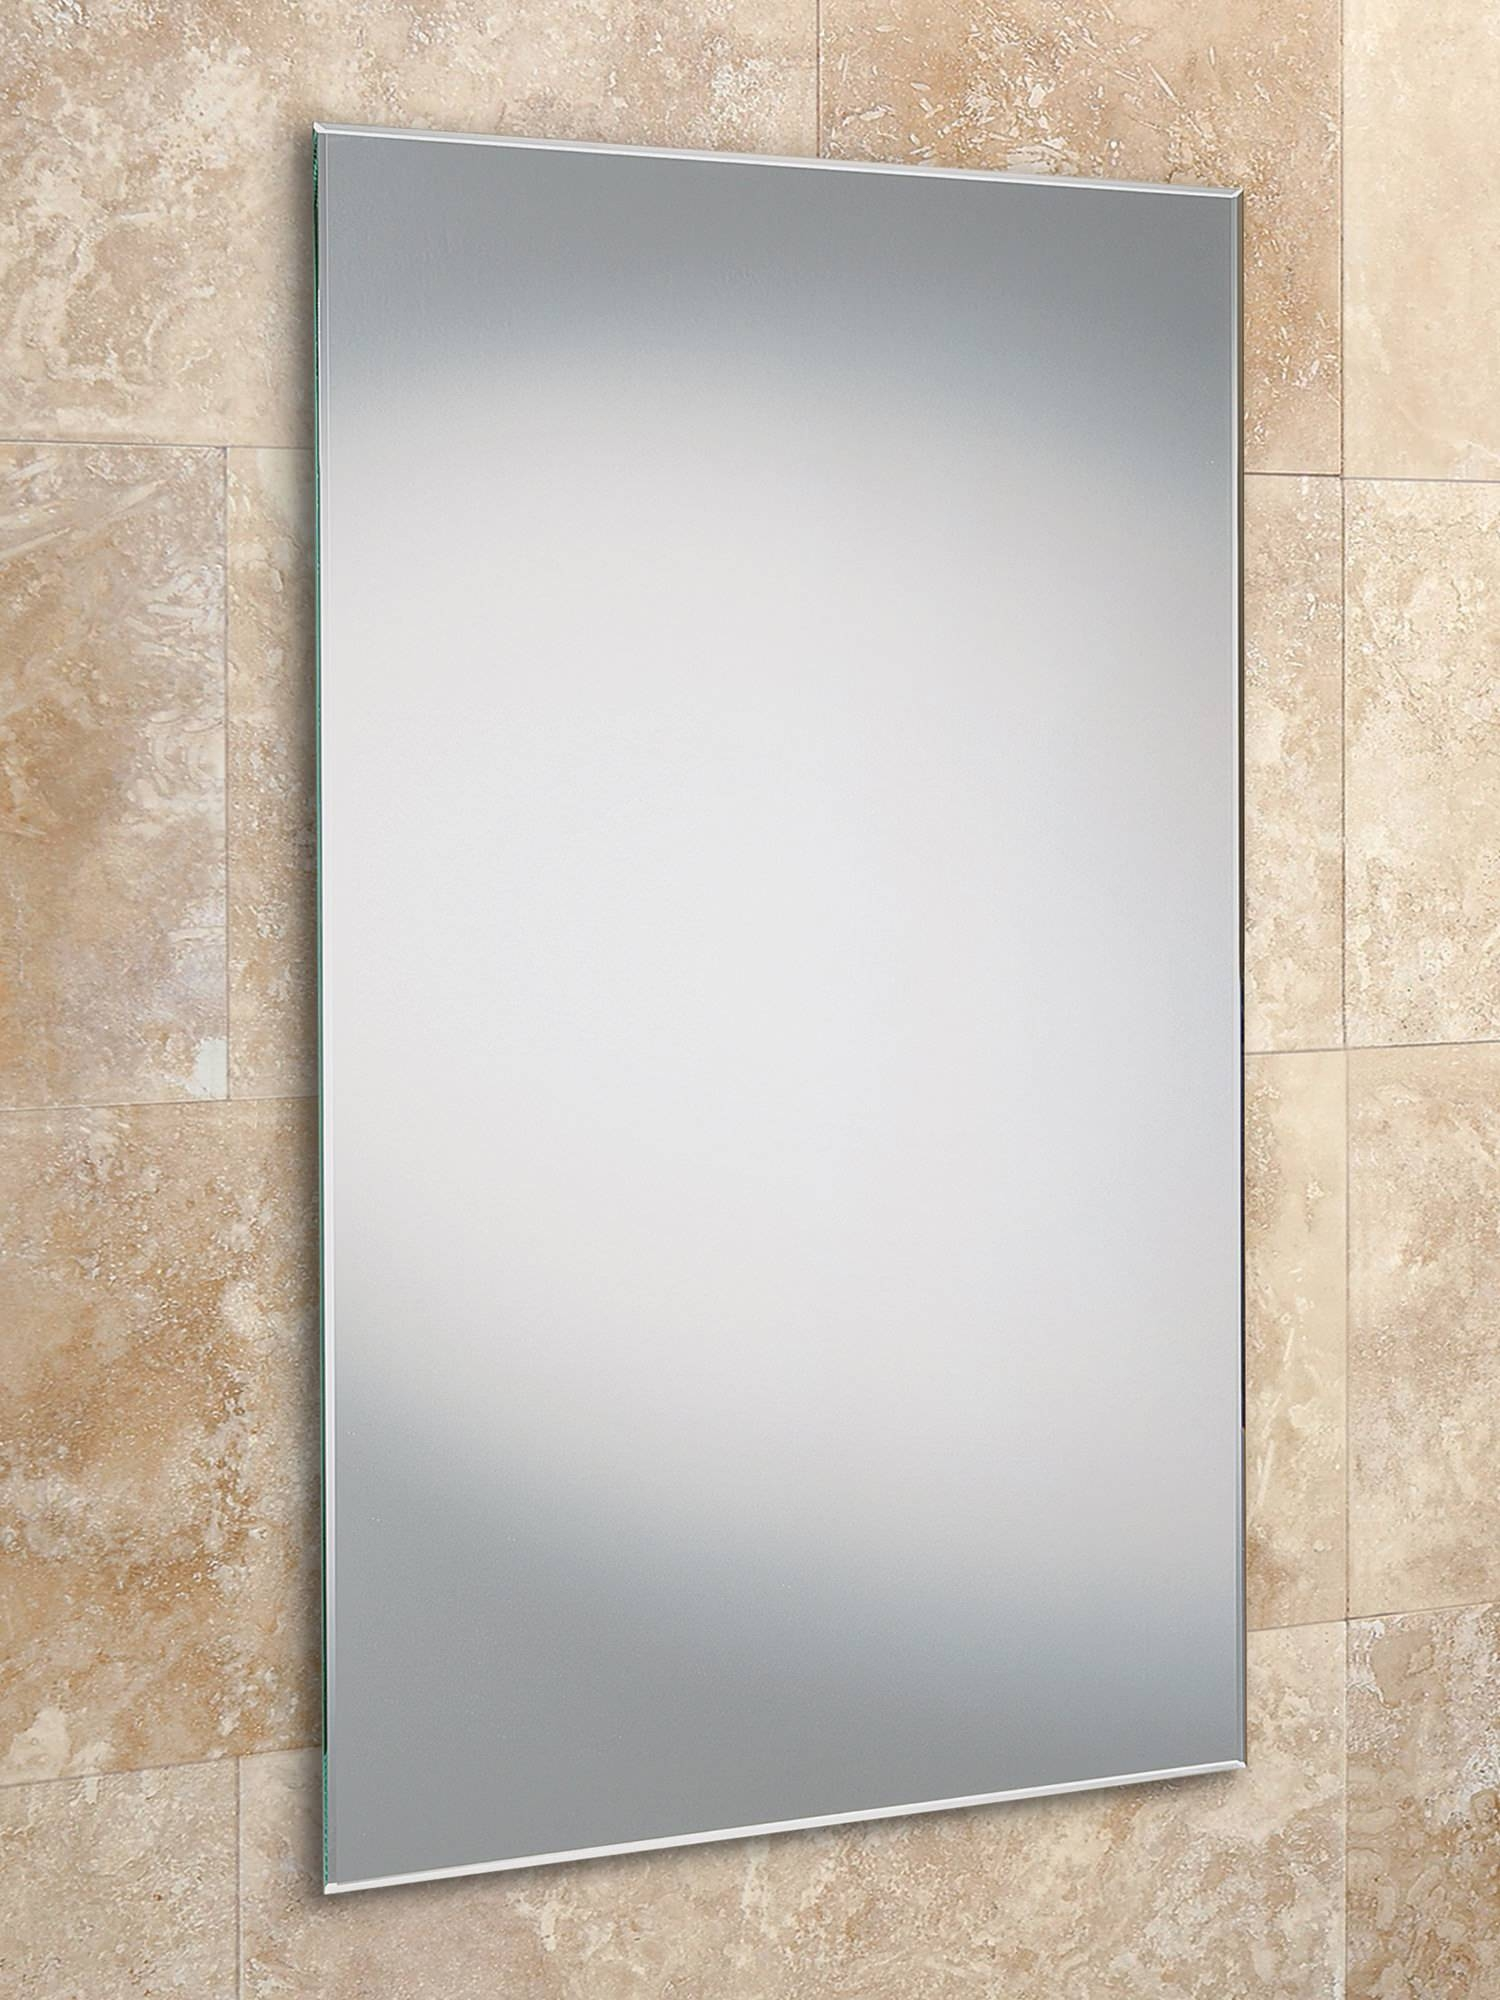 Contemporary Standard Mirrors For Bathrooms   Qs Supplies Regarding Bevel Edged Mirrors (Photo 8 of 15)